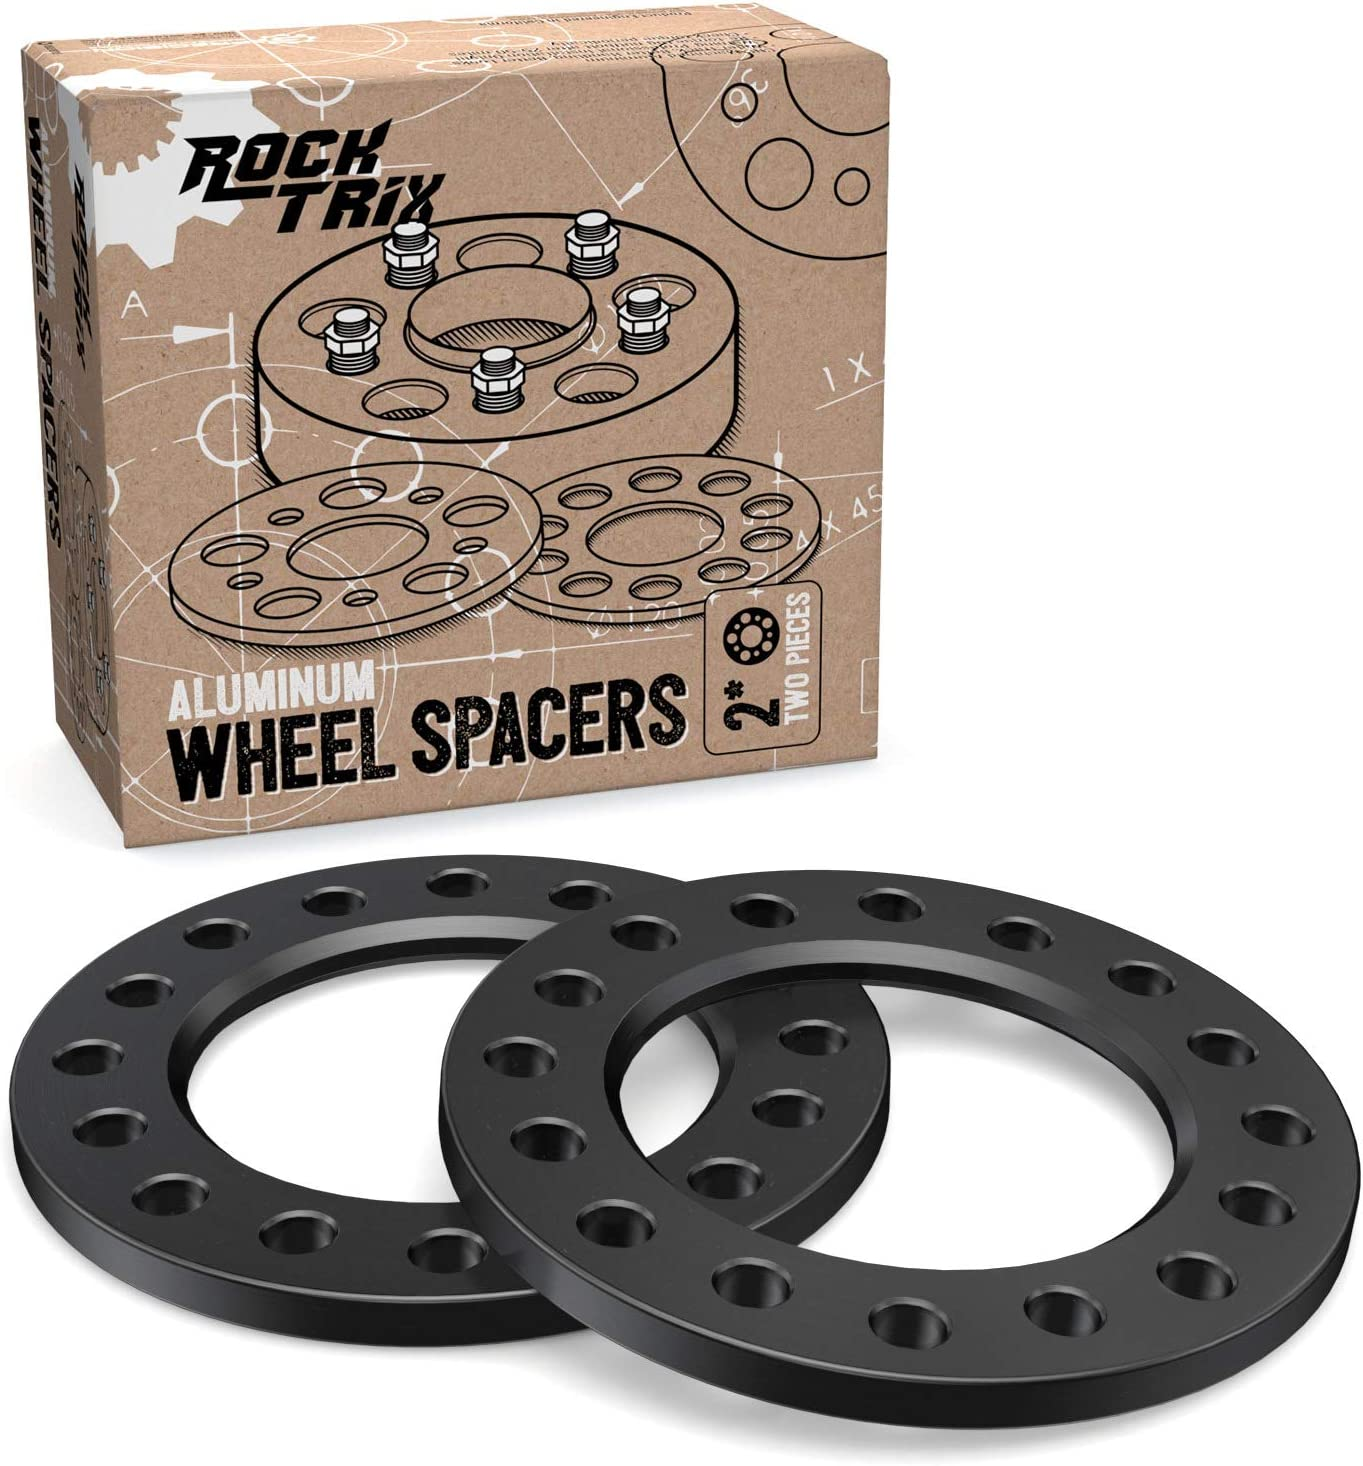 See Description for Specific Year /& Models RockTrix for Precision European Fits many 8-lug Chevy Ford GMC Hummer Dodge - 8x165.1 8x170 Adapters Precision European Motorwerks 8x170 /& 8x6.5 Flat Wheel Spacers 4pc 1//2 Thick